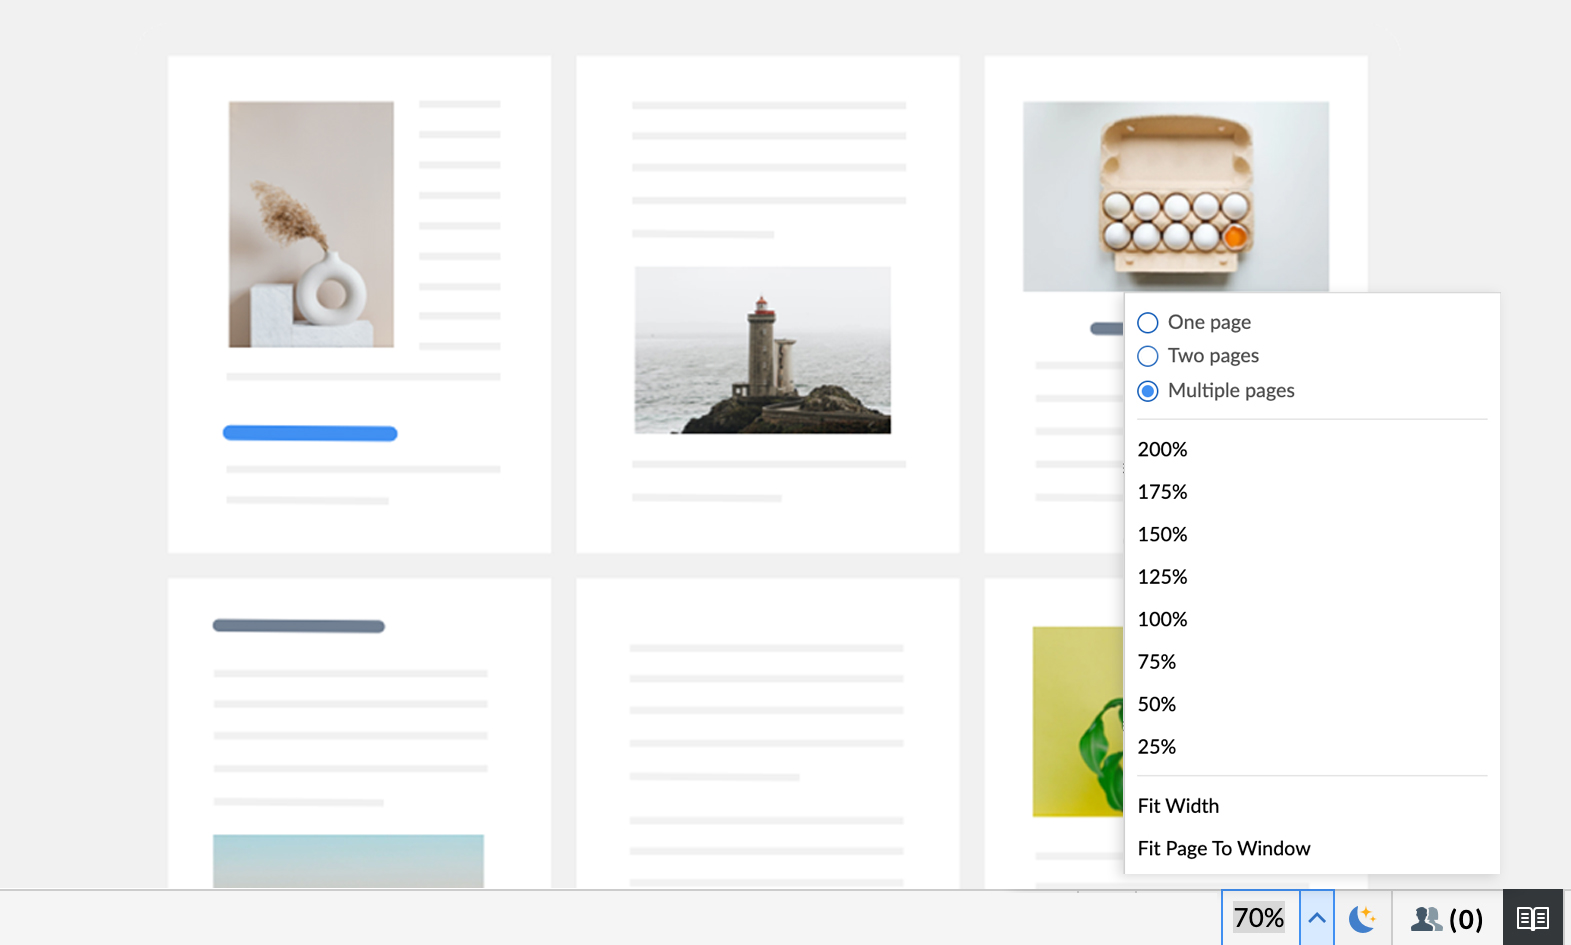 Multi-page view in Zoho Writer